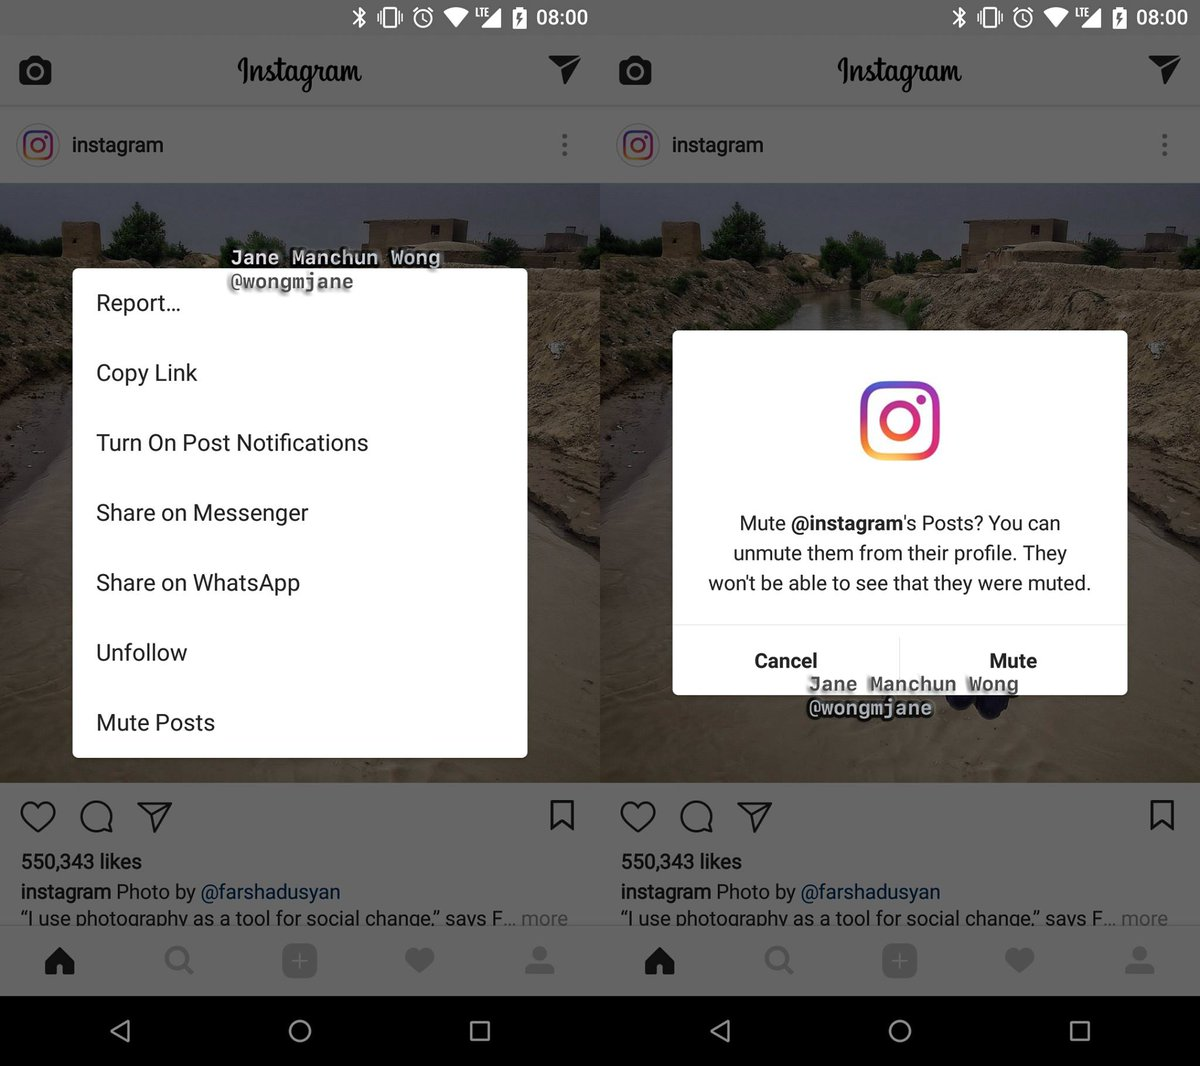 Instagram possibly rolling out new mute button